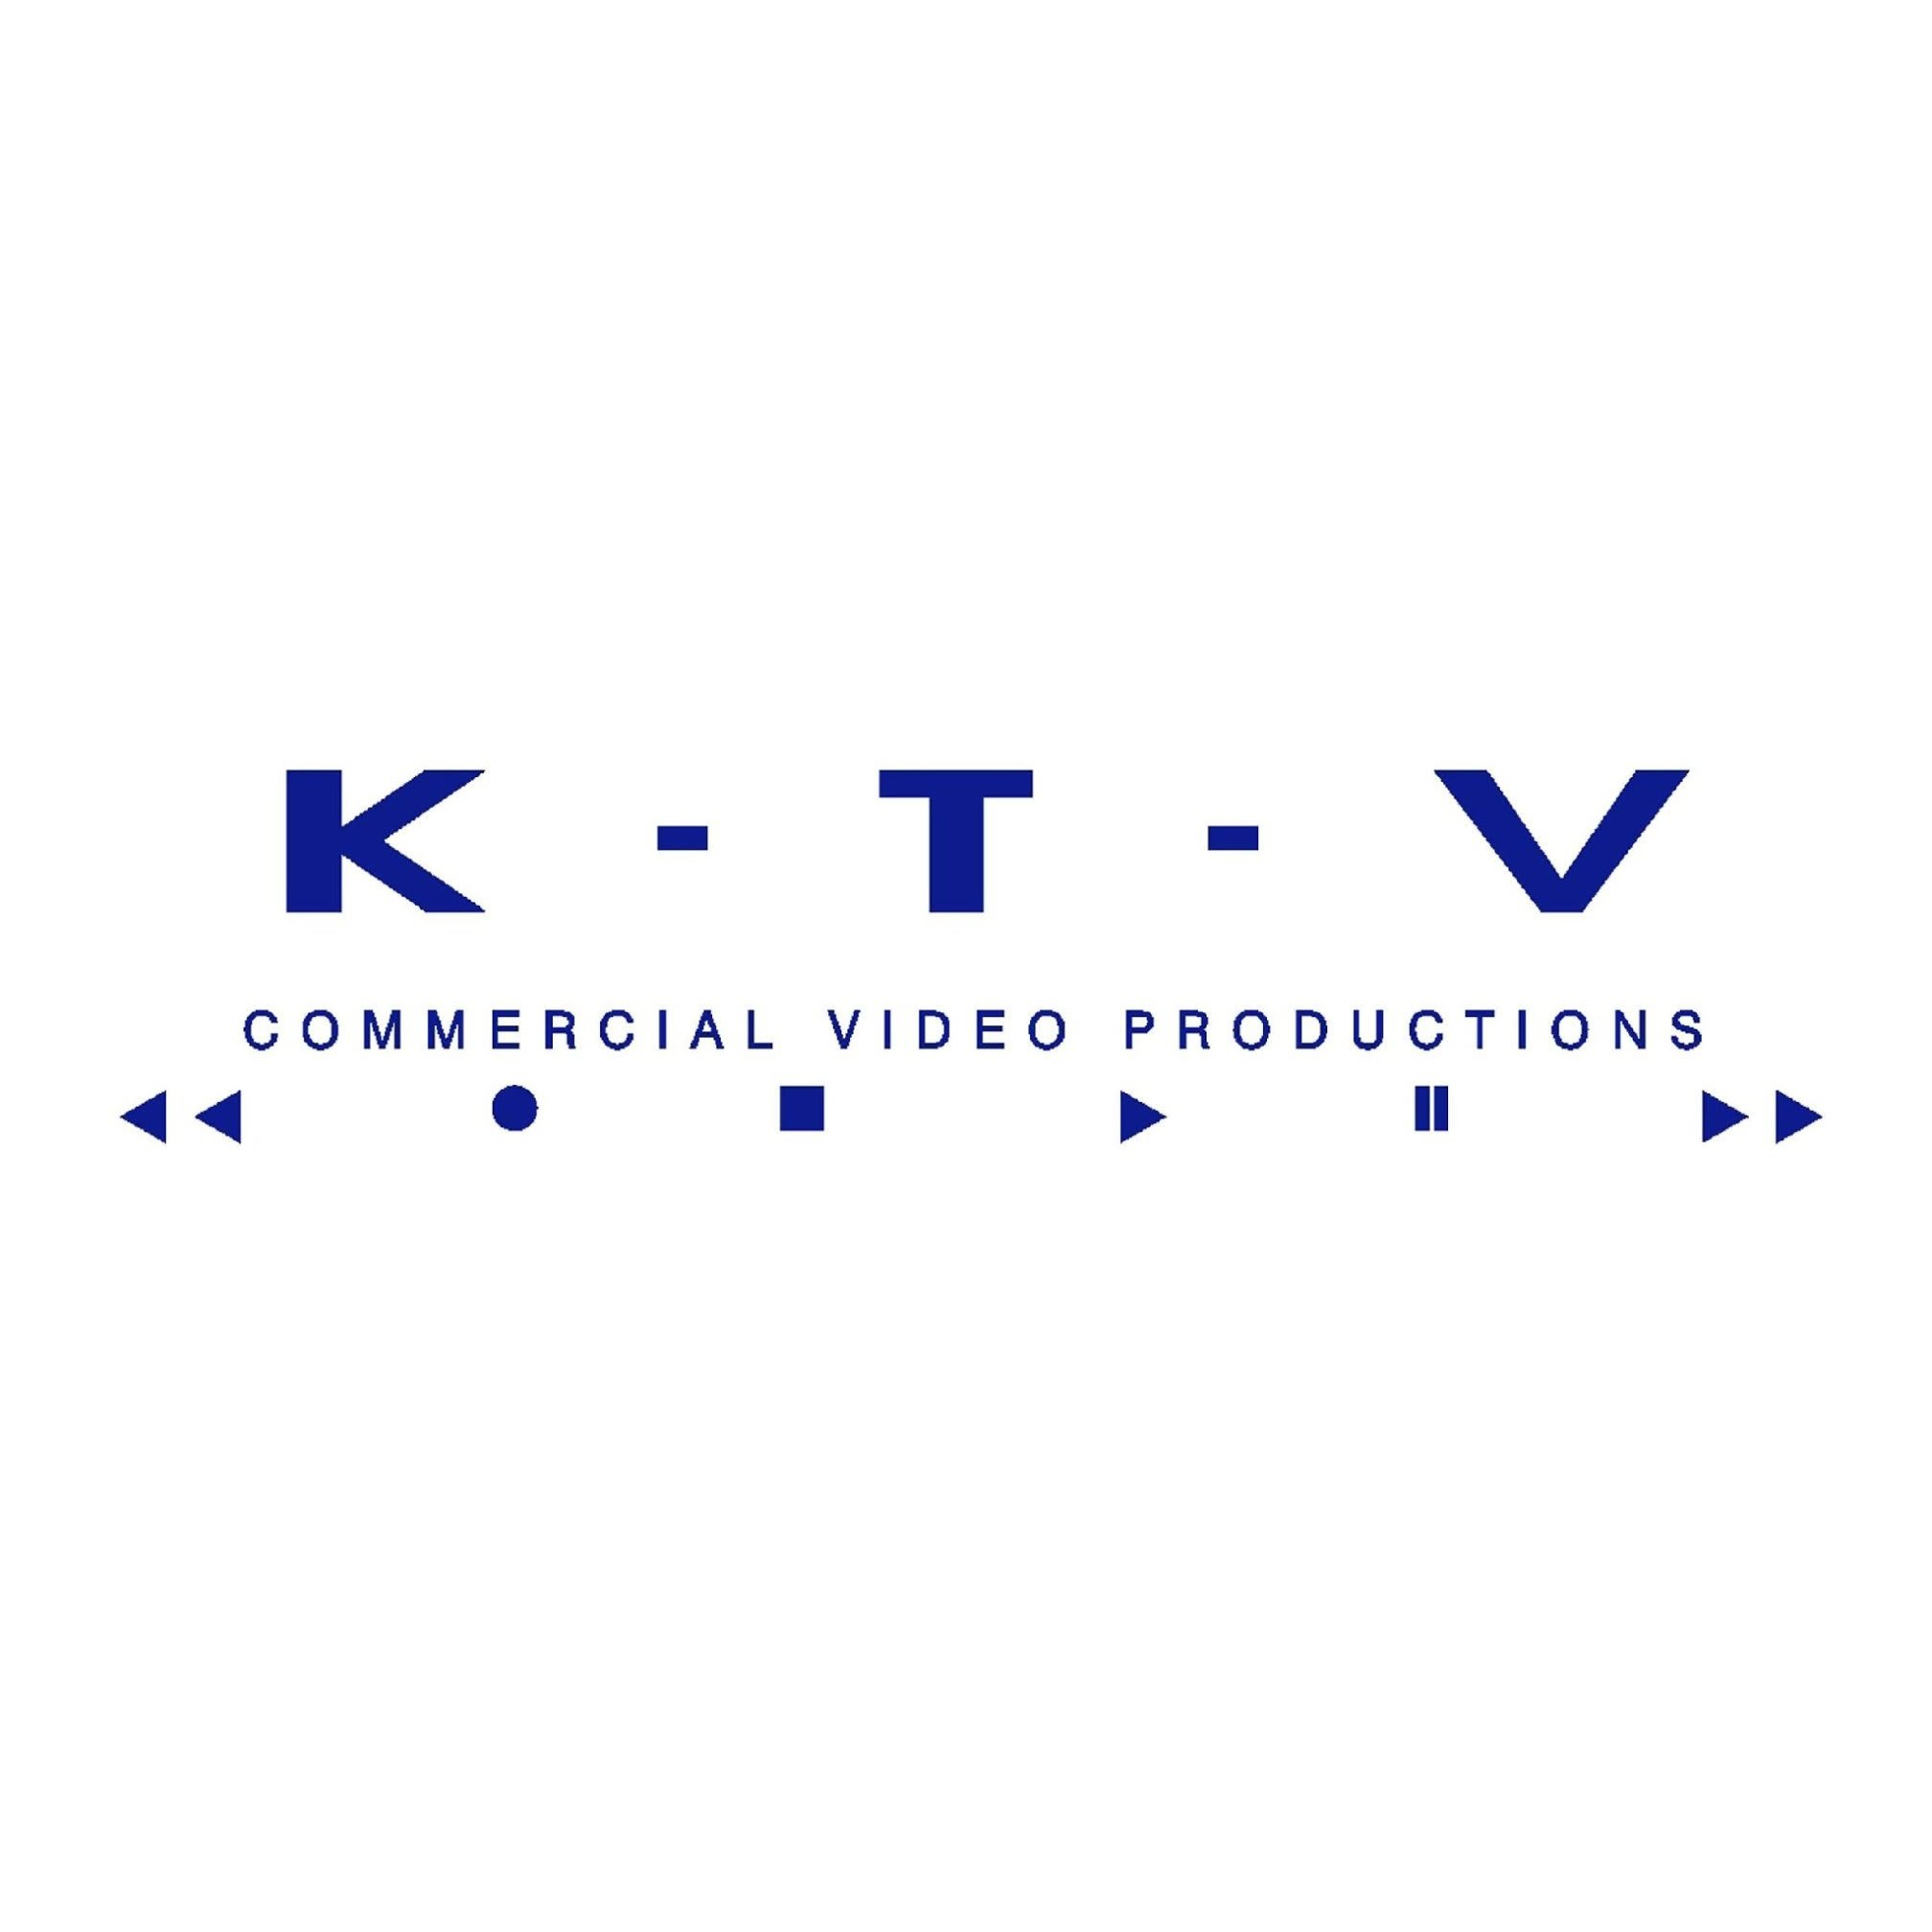 KTV Commercial Video Productions